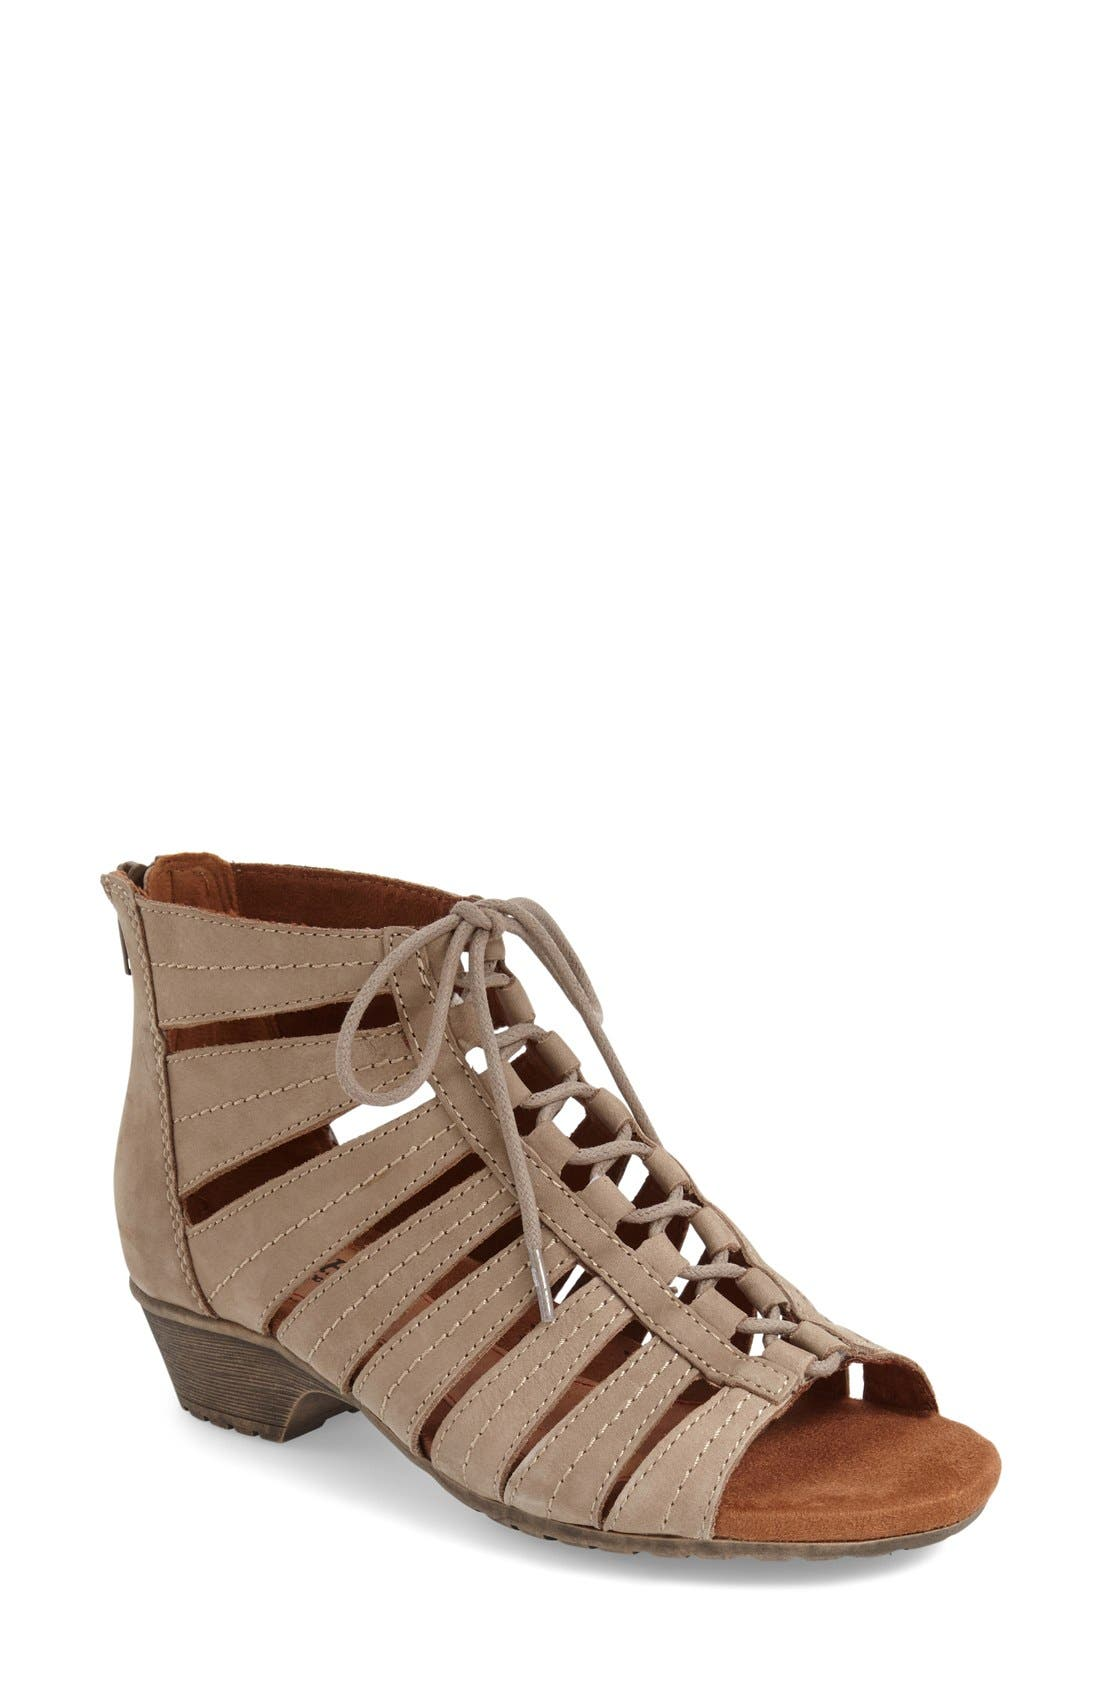 ROCKPORT COBB HILL 'Gabby' Lace-Up Sandal